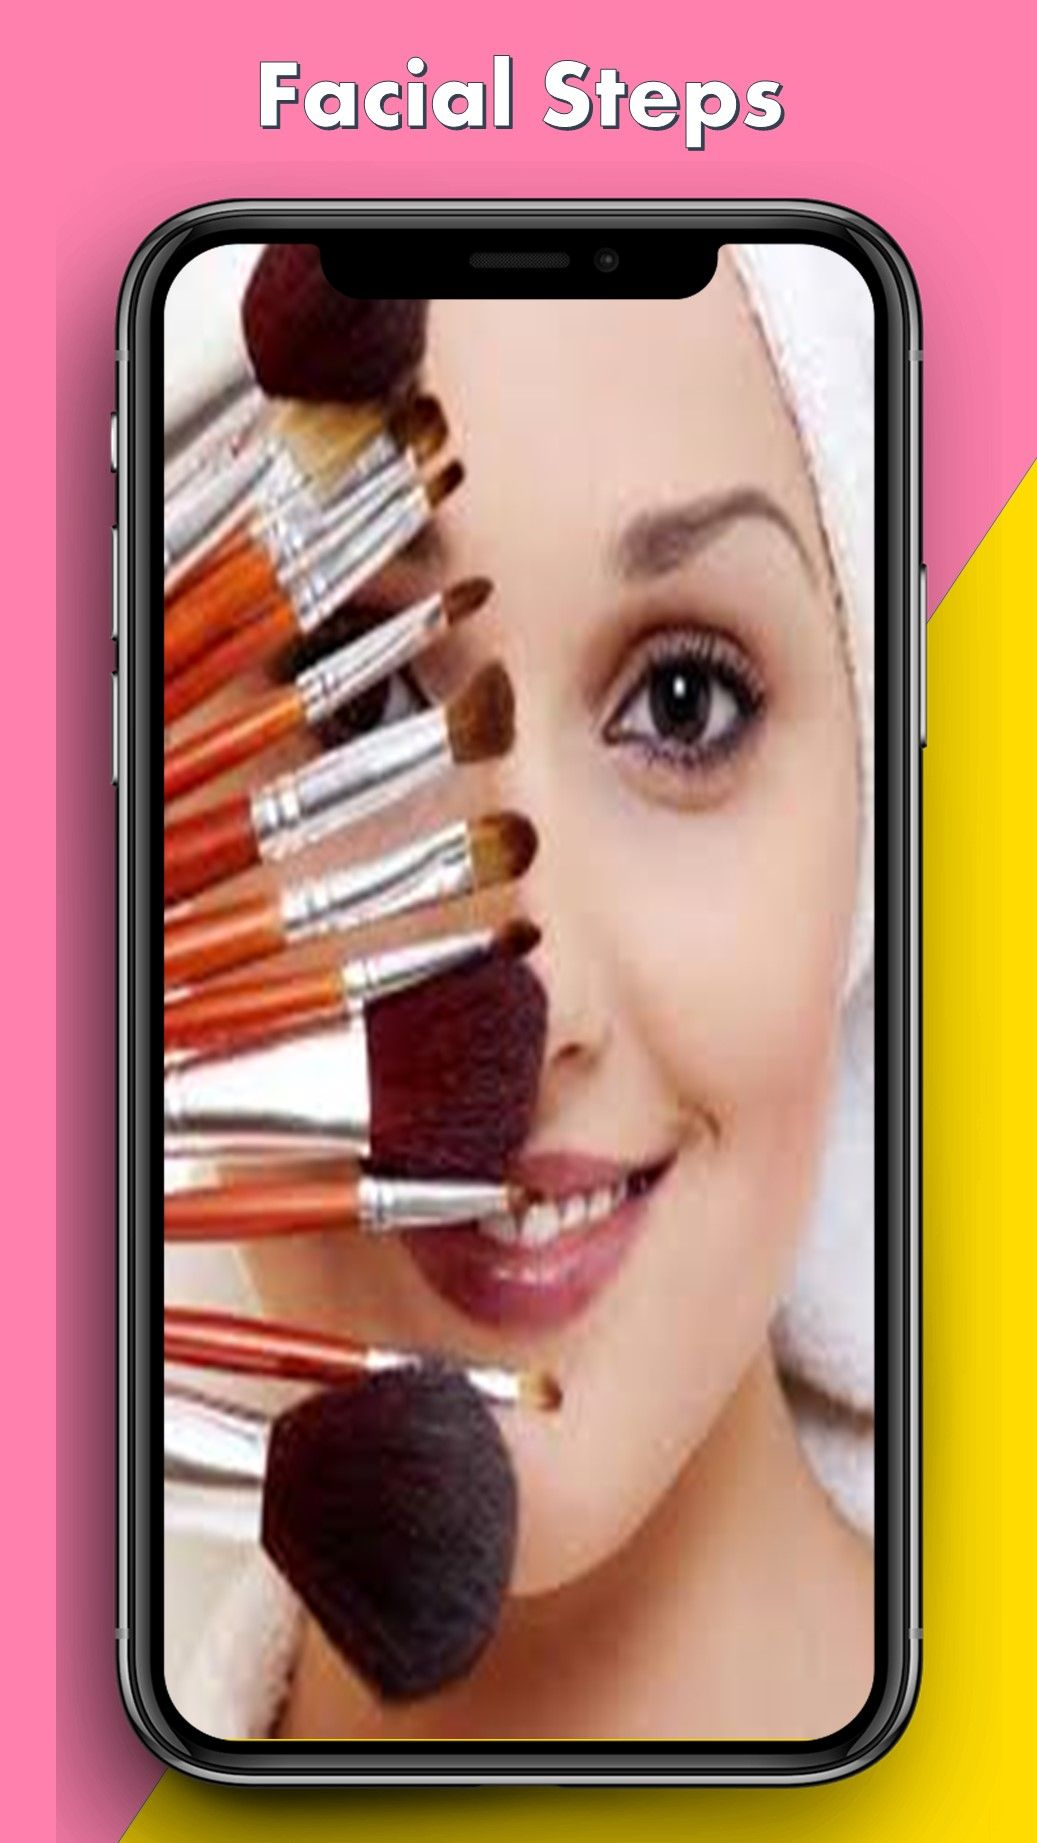 Beauty Parlour Course Android Studio Project Screenshot 3